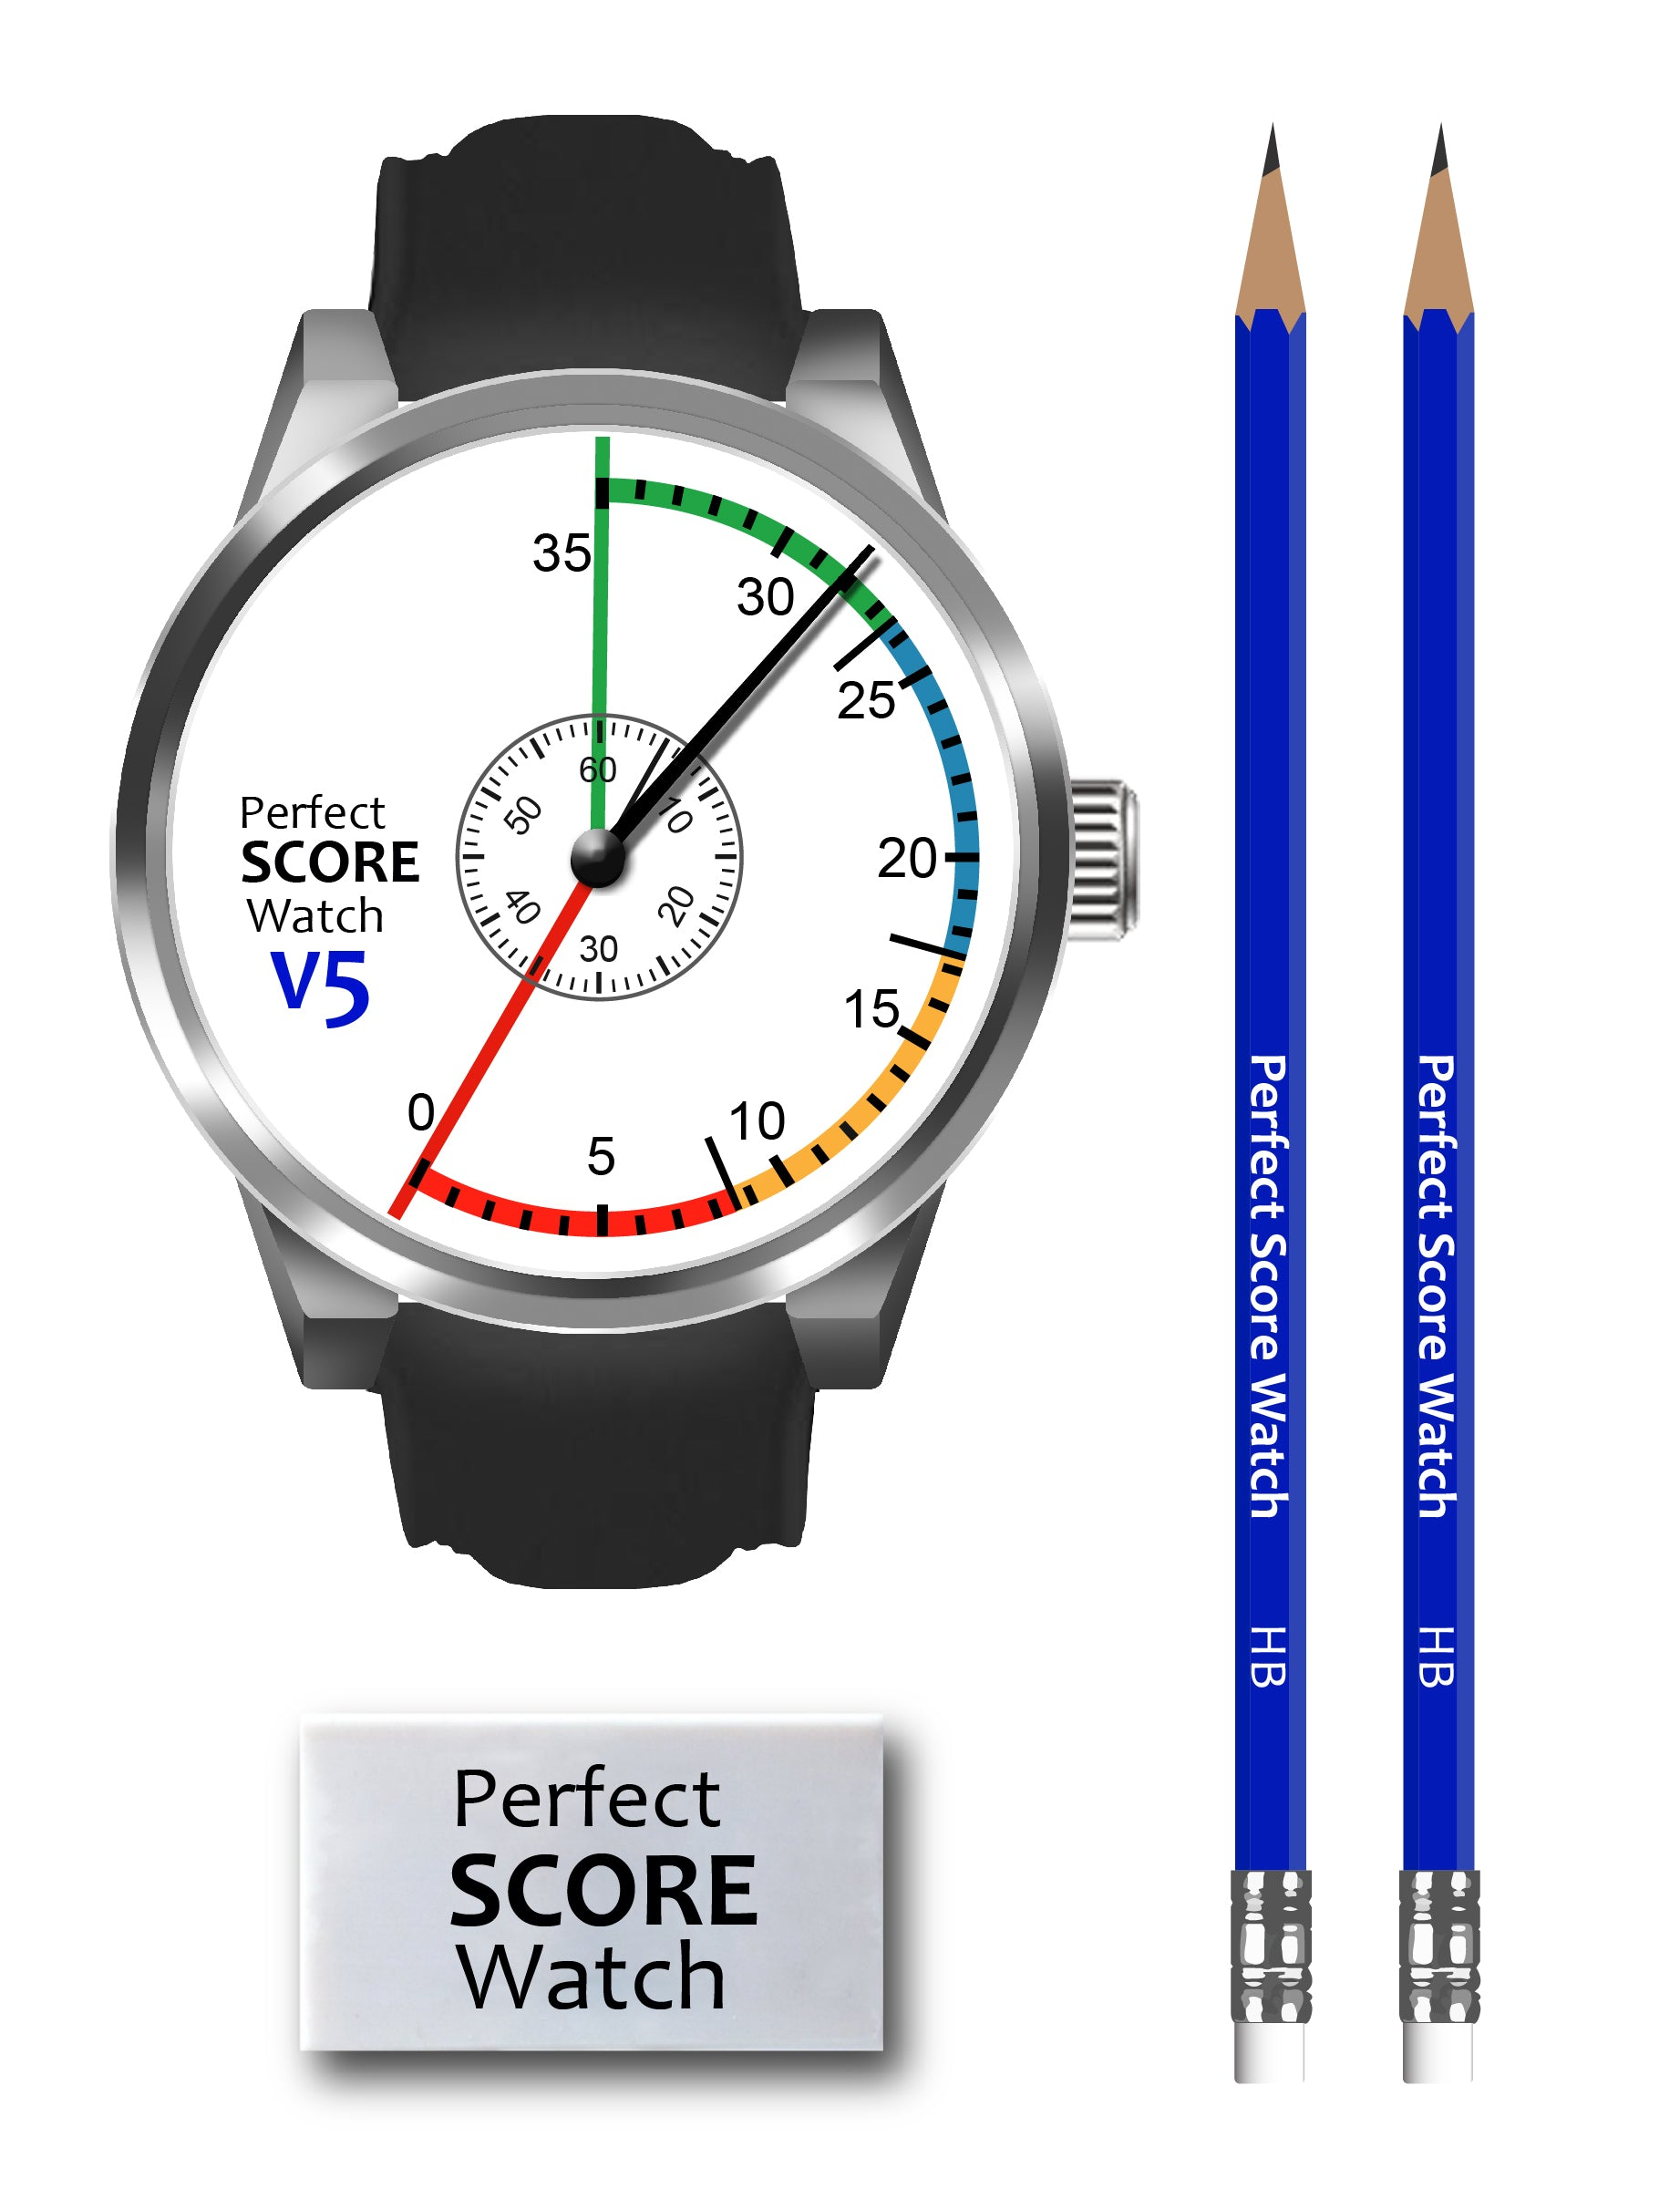 Perfect Score Watch Version 5 for the LSAT Exam